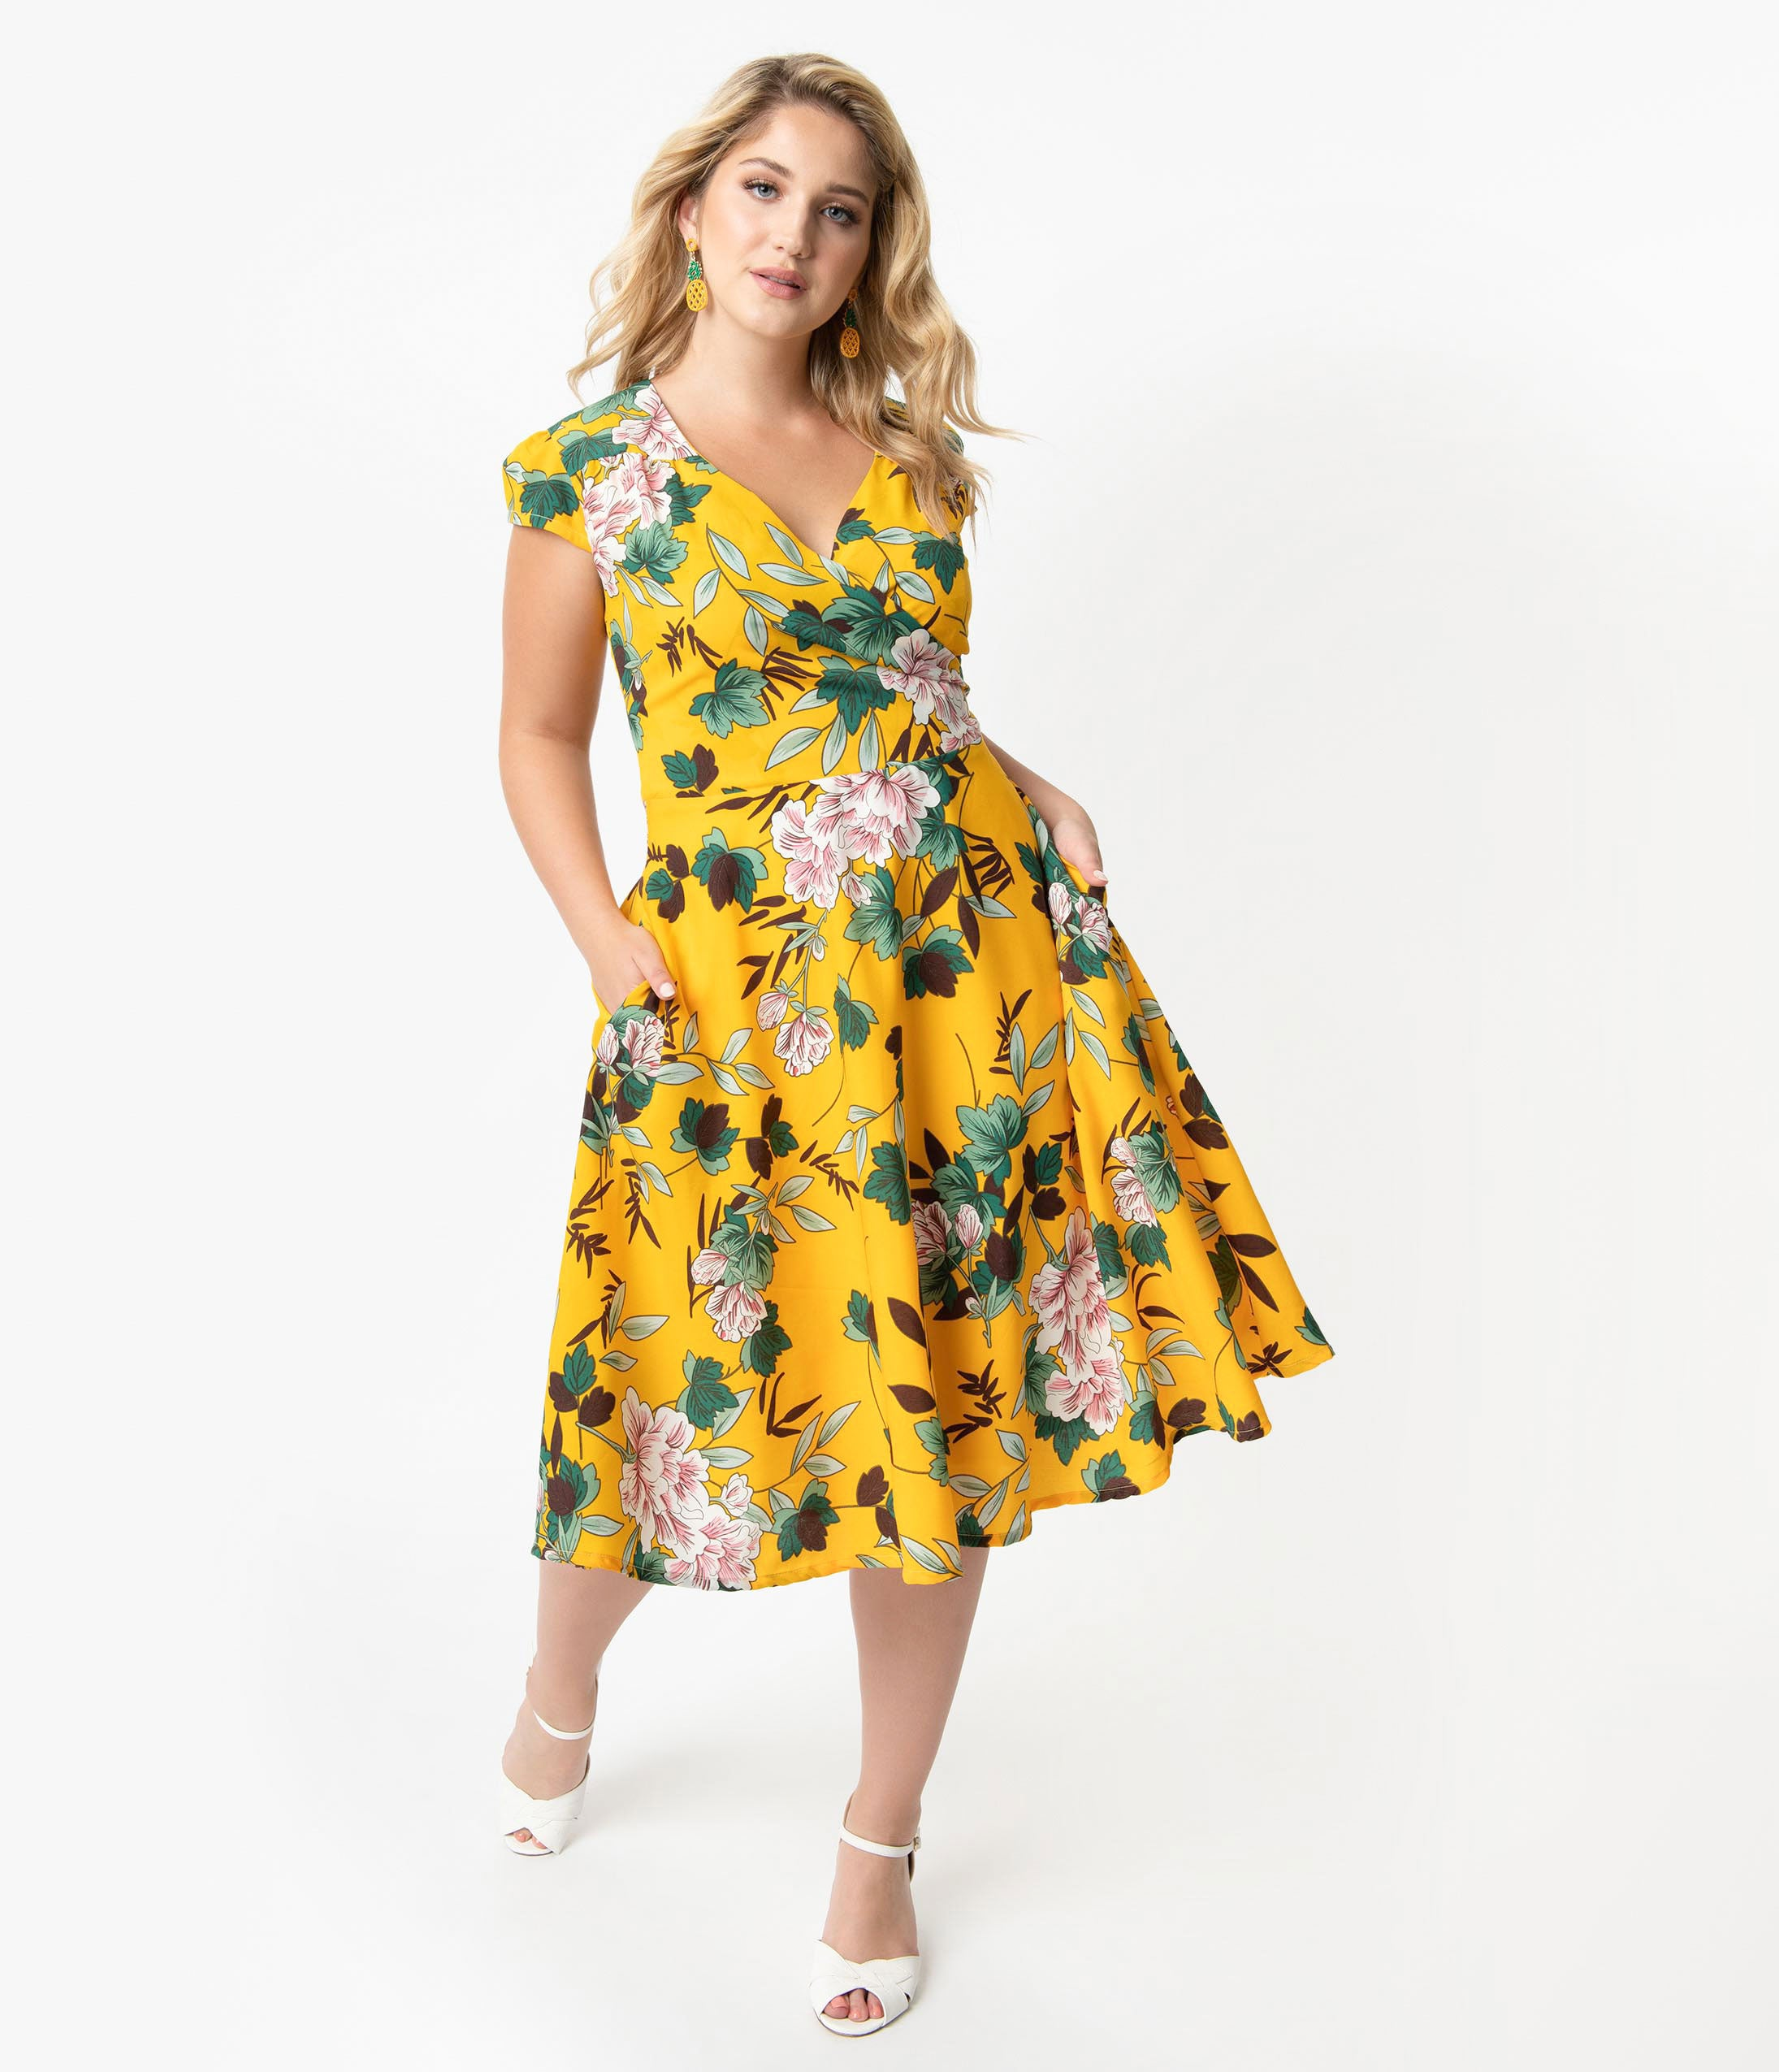 5799e84d9 Plus Size Vintage Style Yellow & Ivory Floral Print Cap Sleeve Laurina  Swing Dress